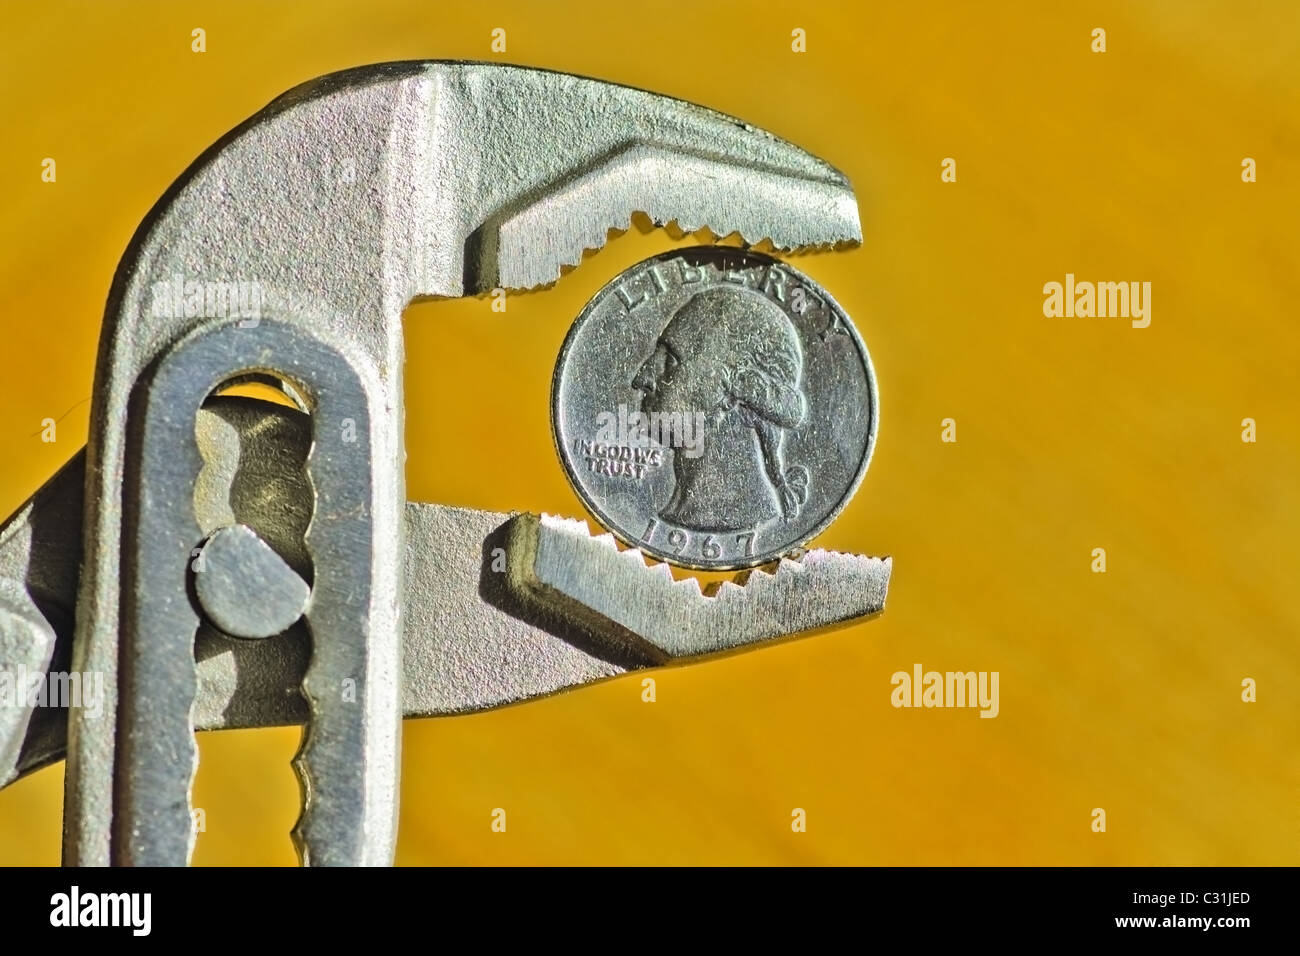 Close up of an Dollar Coin between pliers, concept of financial crisis - Stock Image